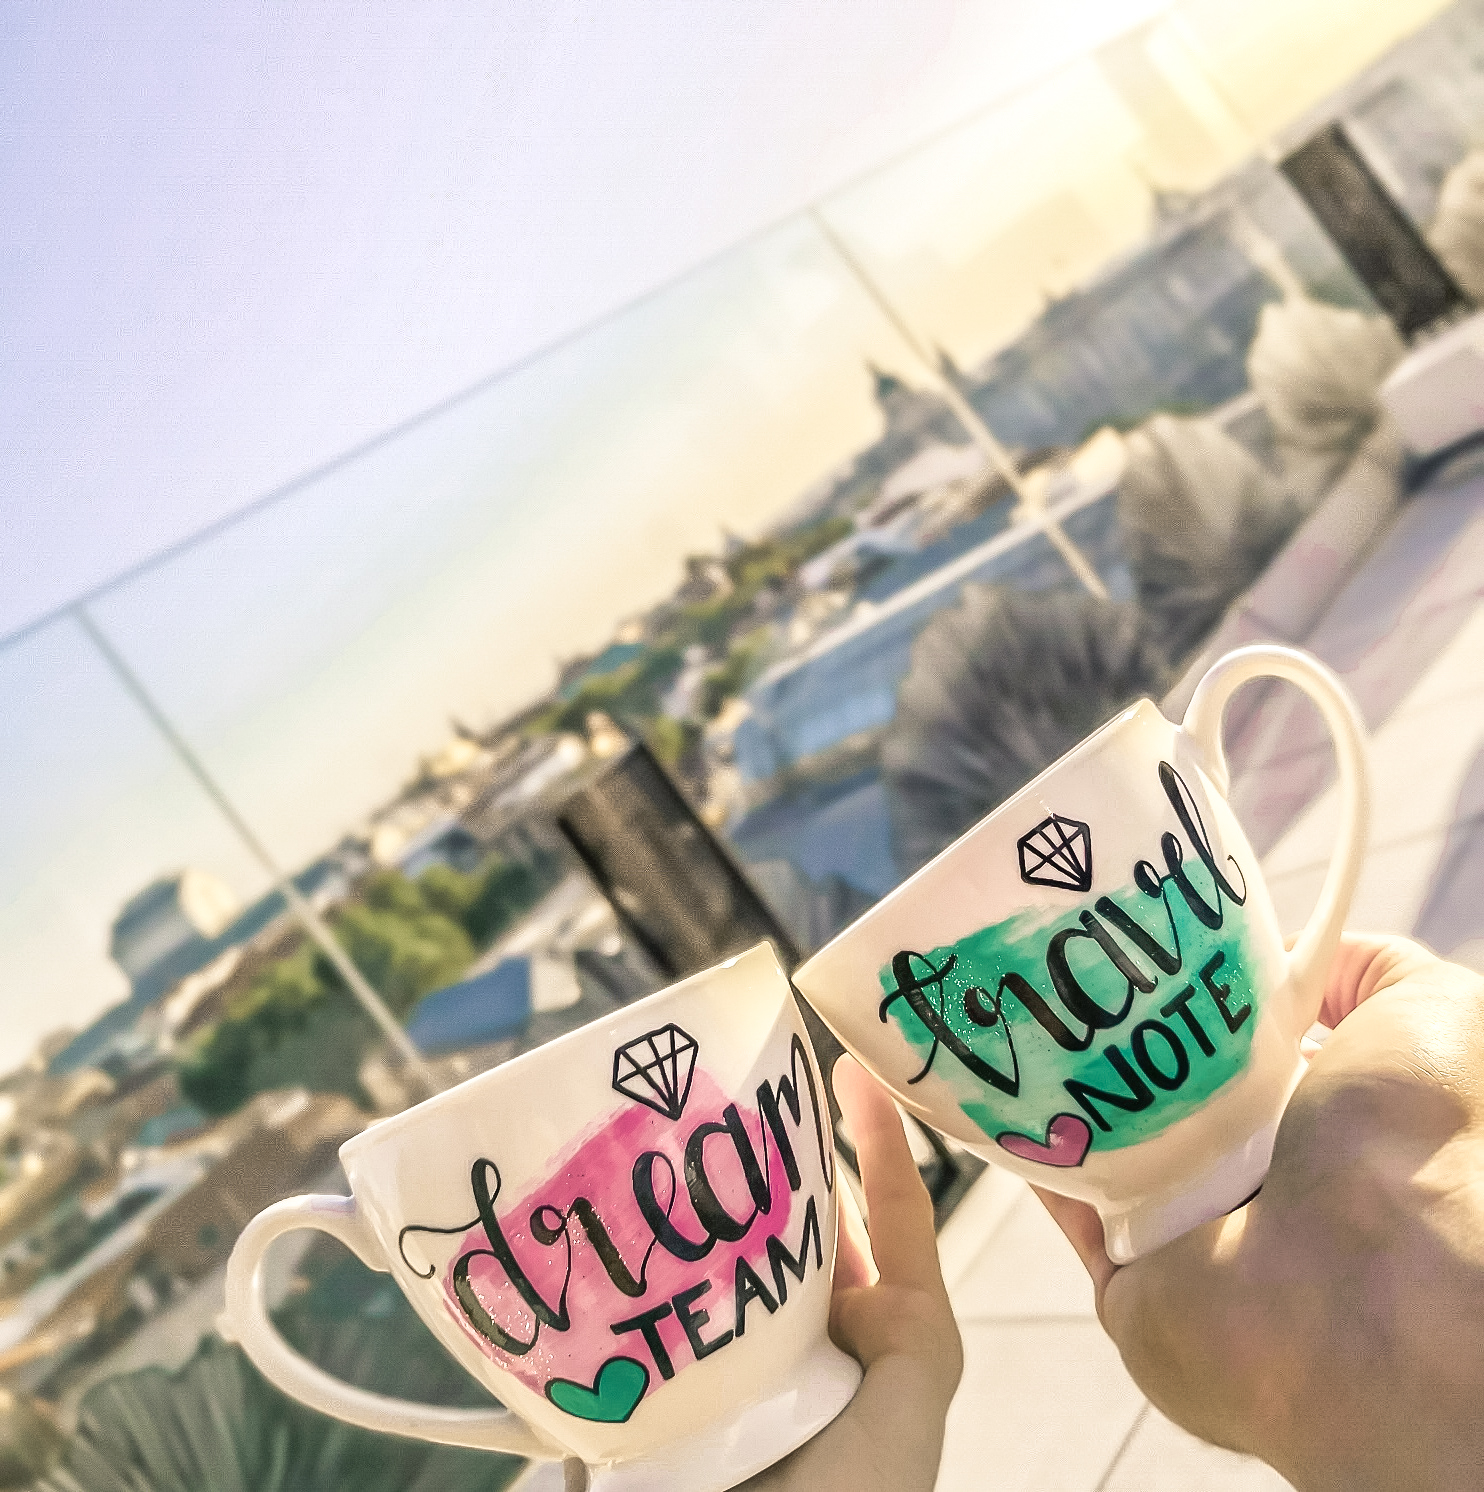 Sky bar madrid mugs and hugs